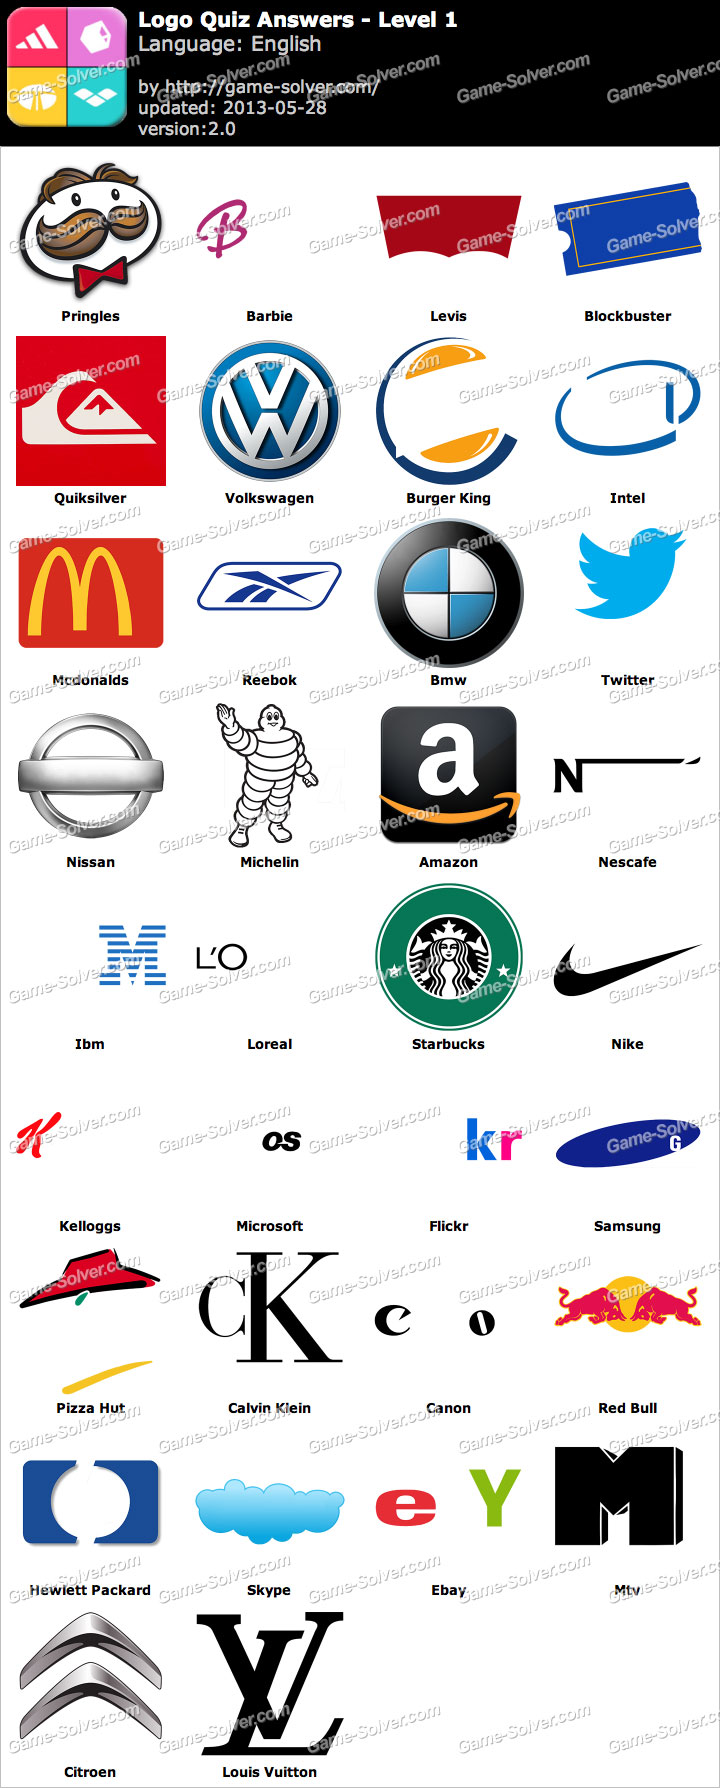 Logo Quiz Game Answers Level 1